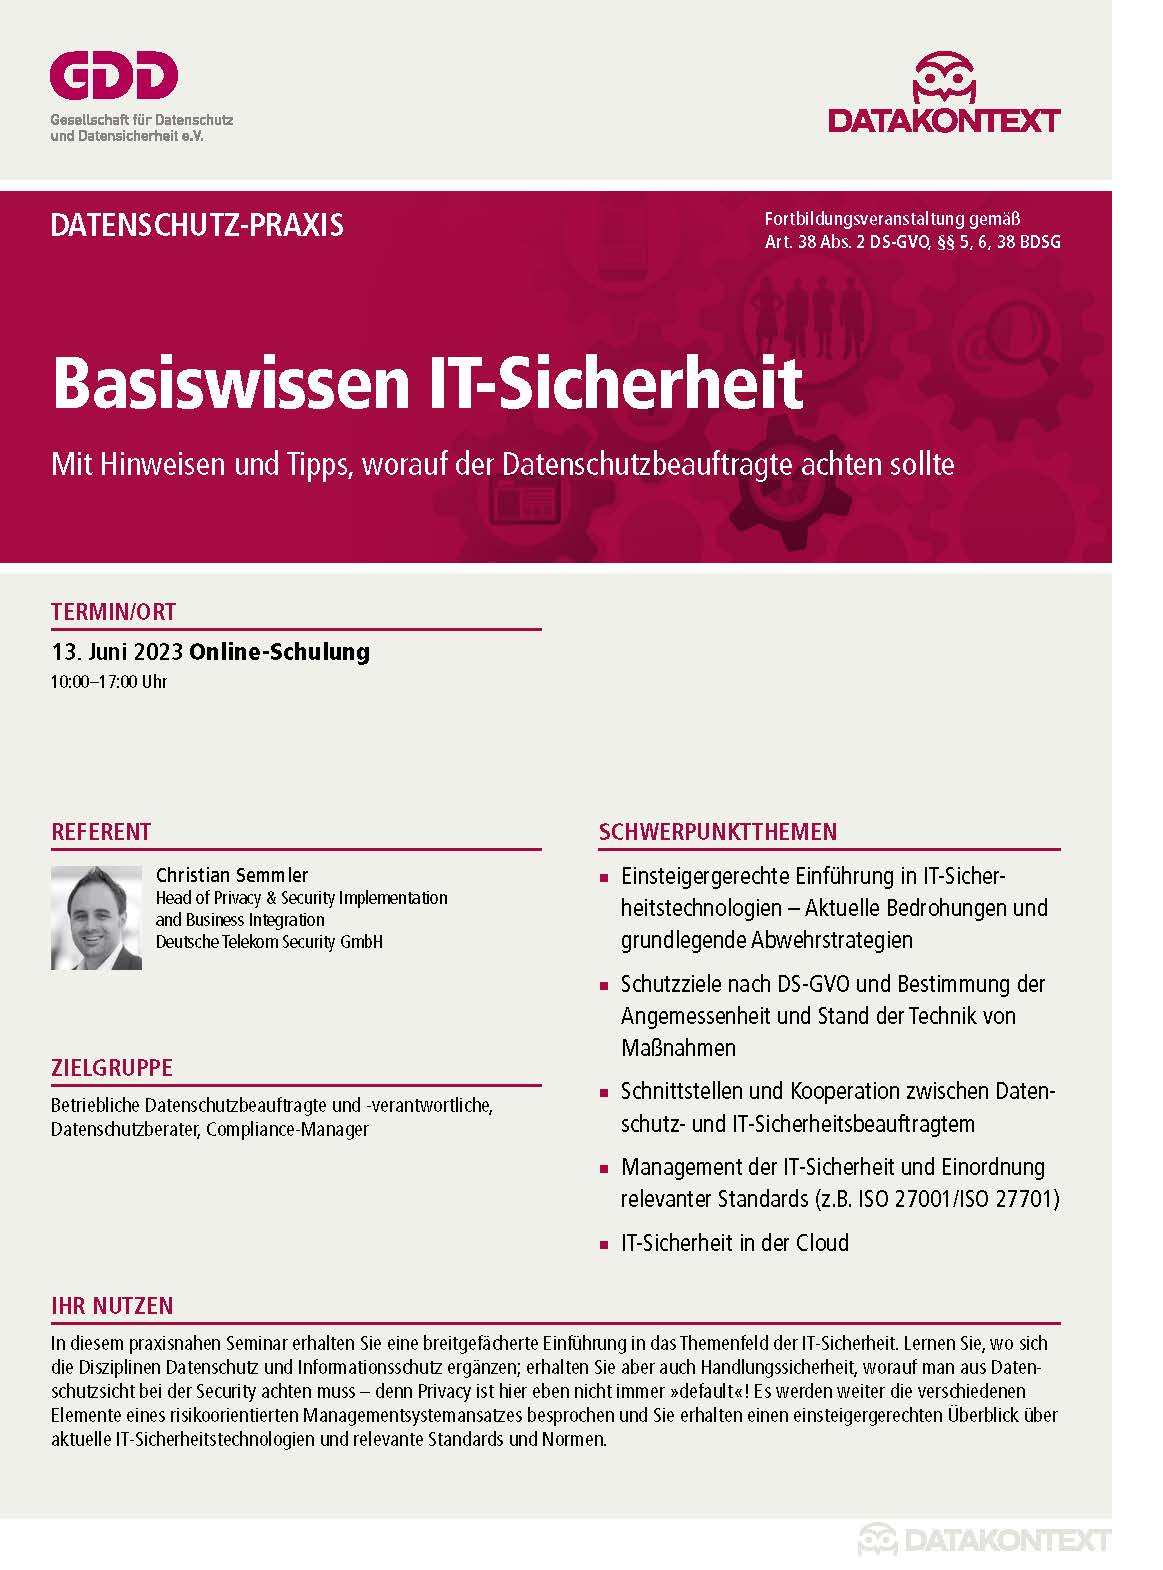 Basiswissen IT-Sicherheit